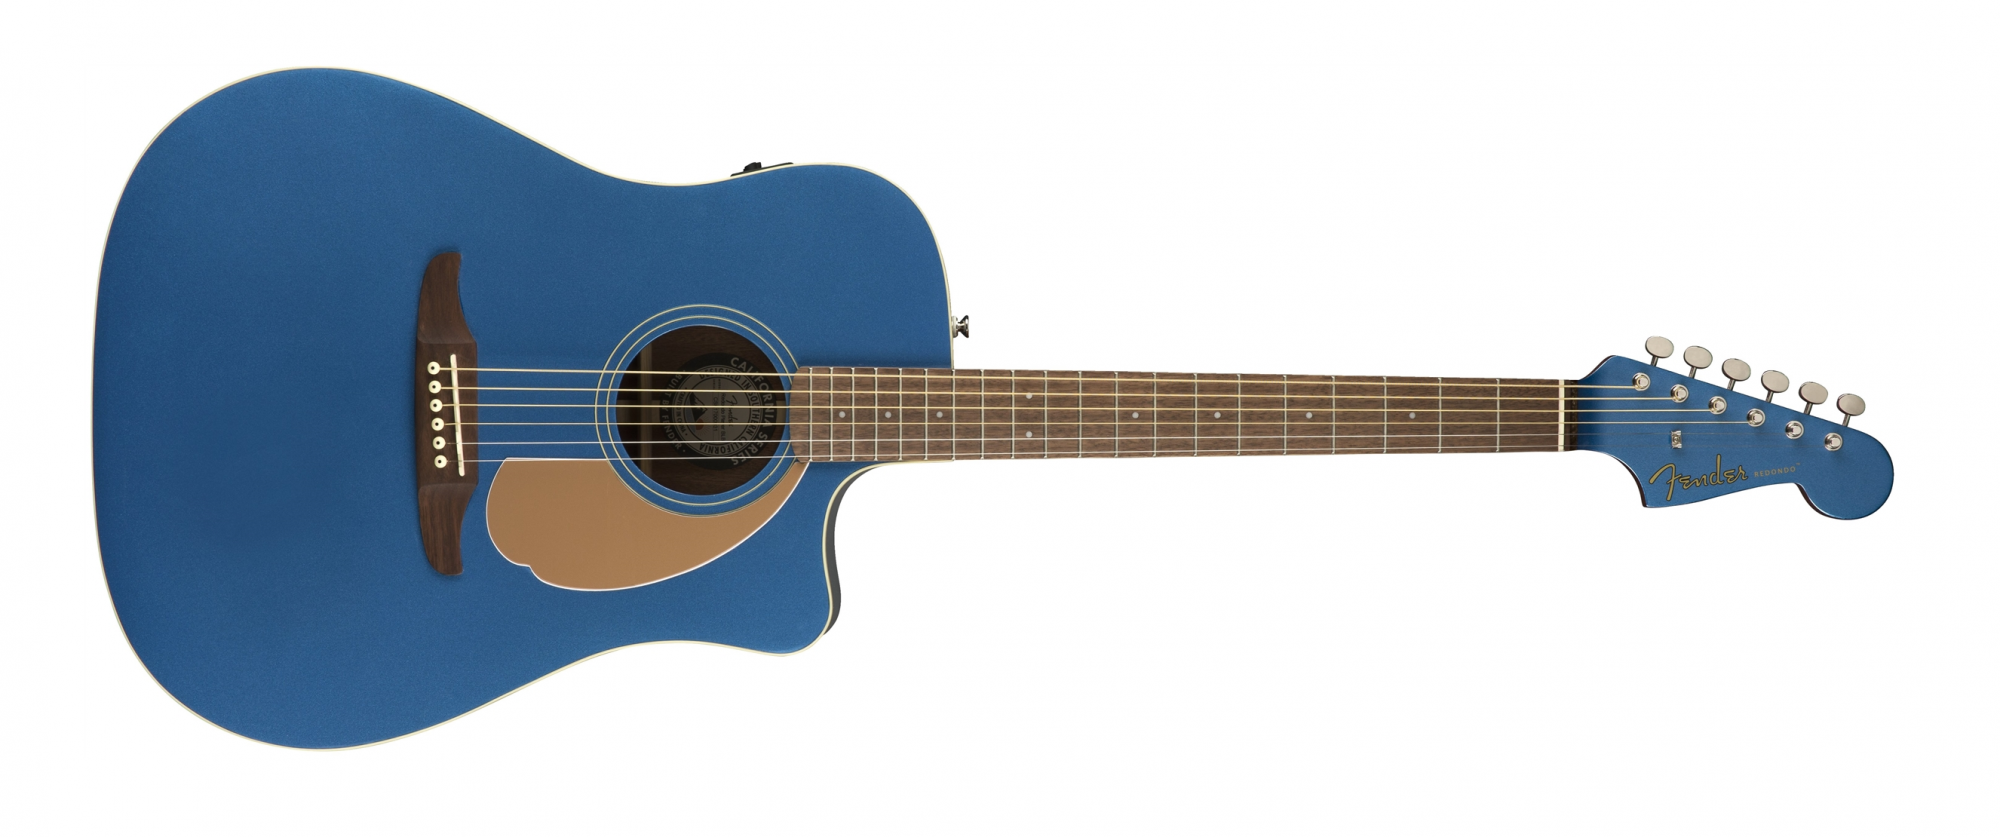 Fender Redondo Player Acoustic Guitar WN Belmont Blue